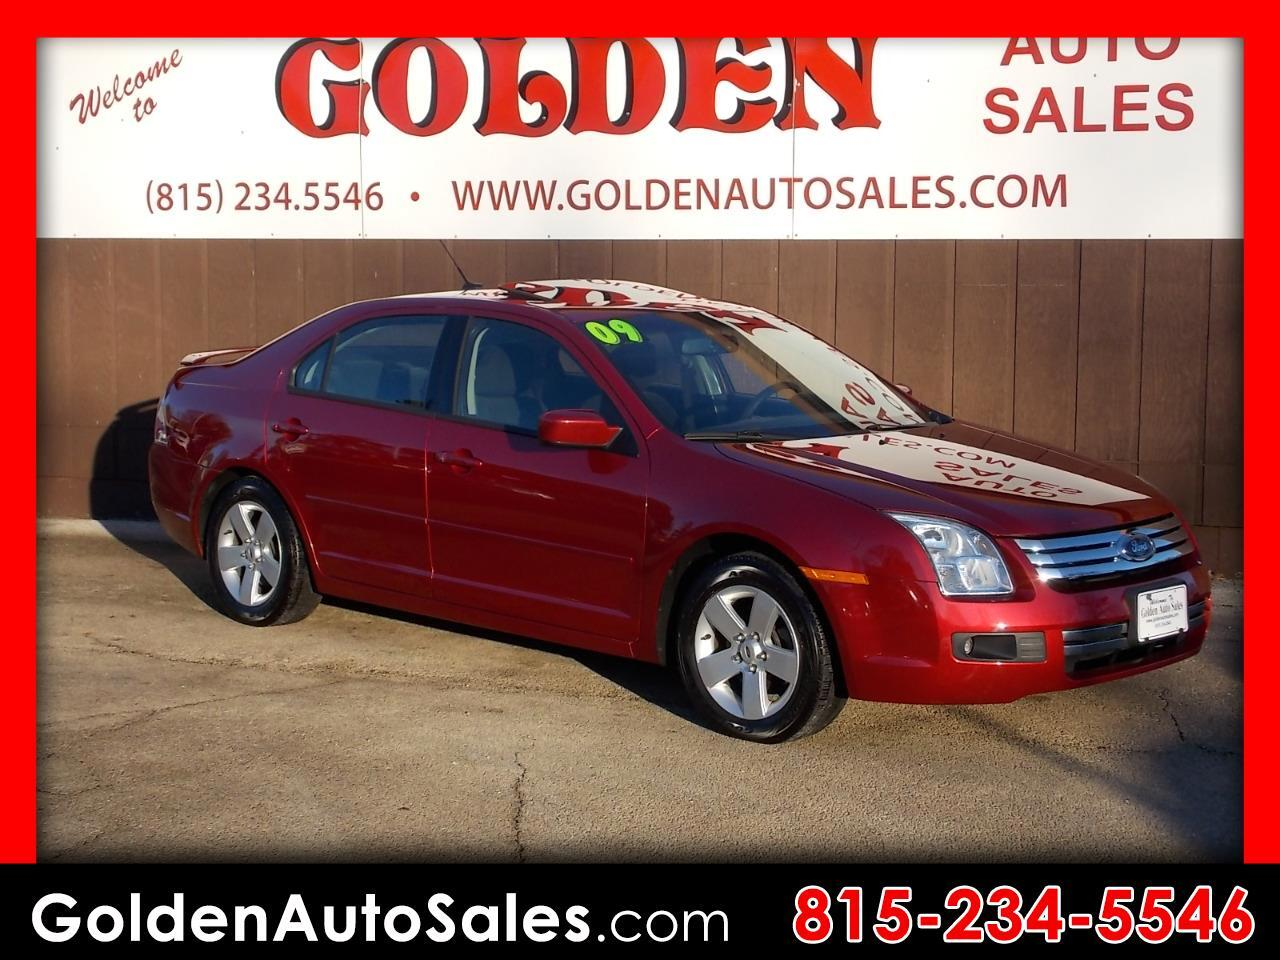 2009 Ford Fusion 4dr Sdn V6 SE AWD